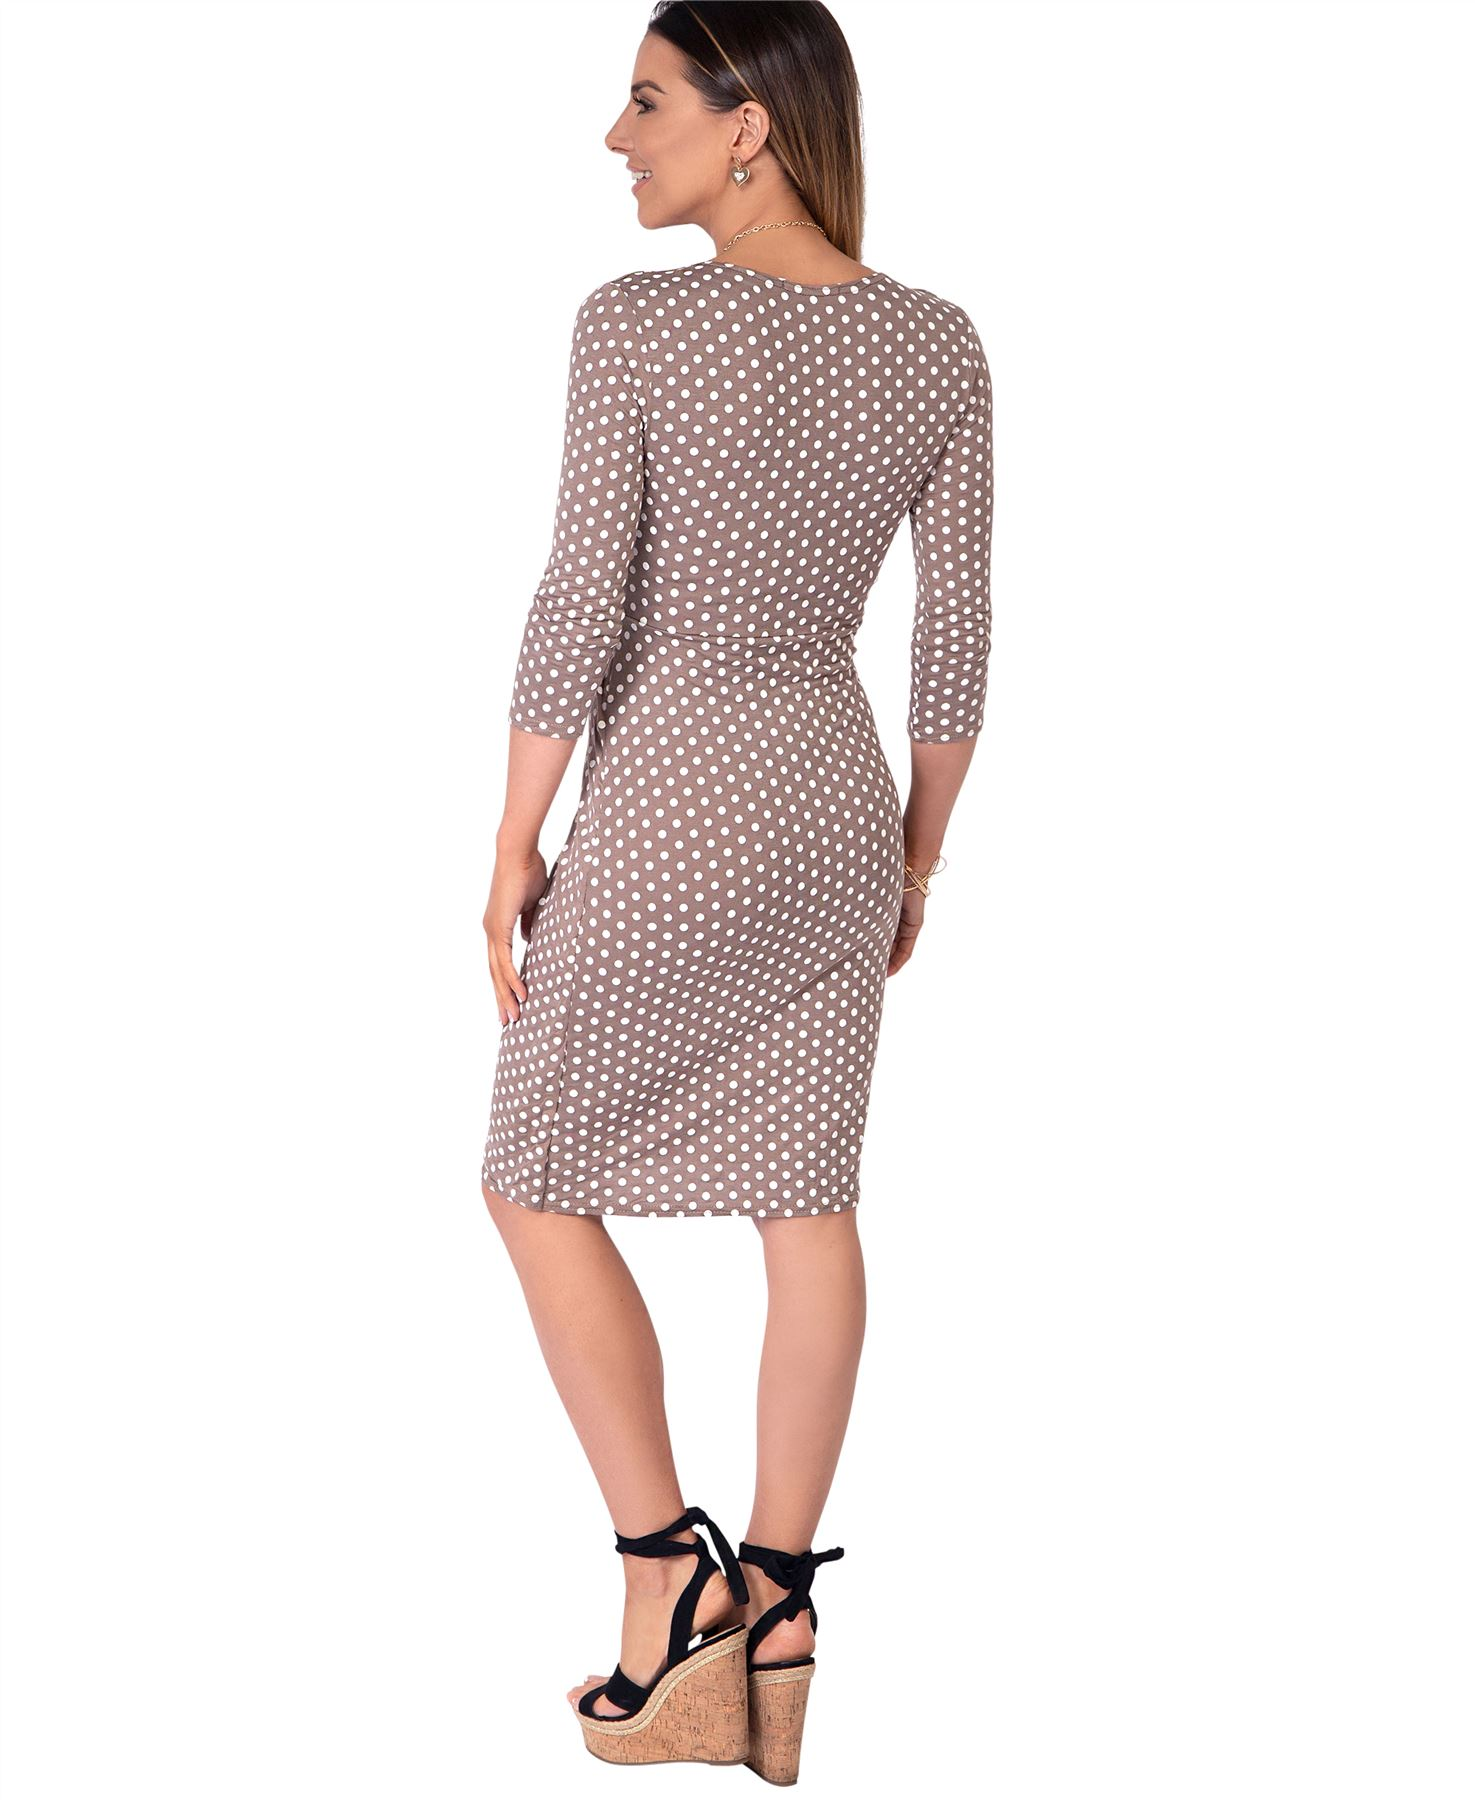 Womens-Polka-Dot-Dress-Pleated-Skirt-Wrap-Front-Midi-V-Neck-Top-Swing-Party thumbnail 15